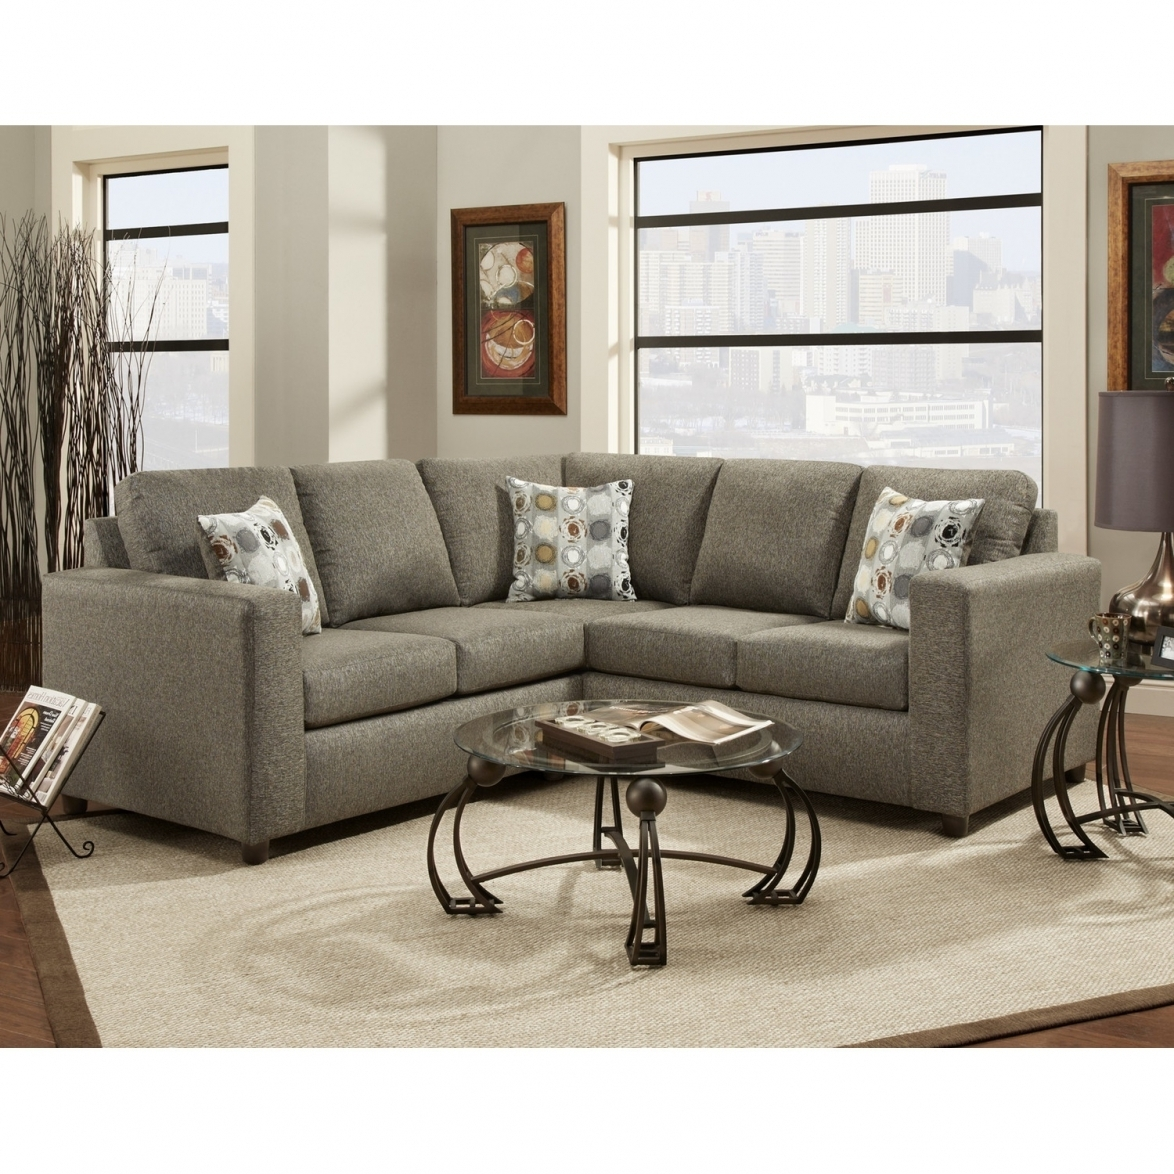 Sectional Sofas Jacksonville Fl - Hotelsbacau regarding Jacksonville Florida Sectional Sofas (Image 8 of 10)